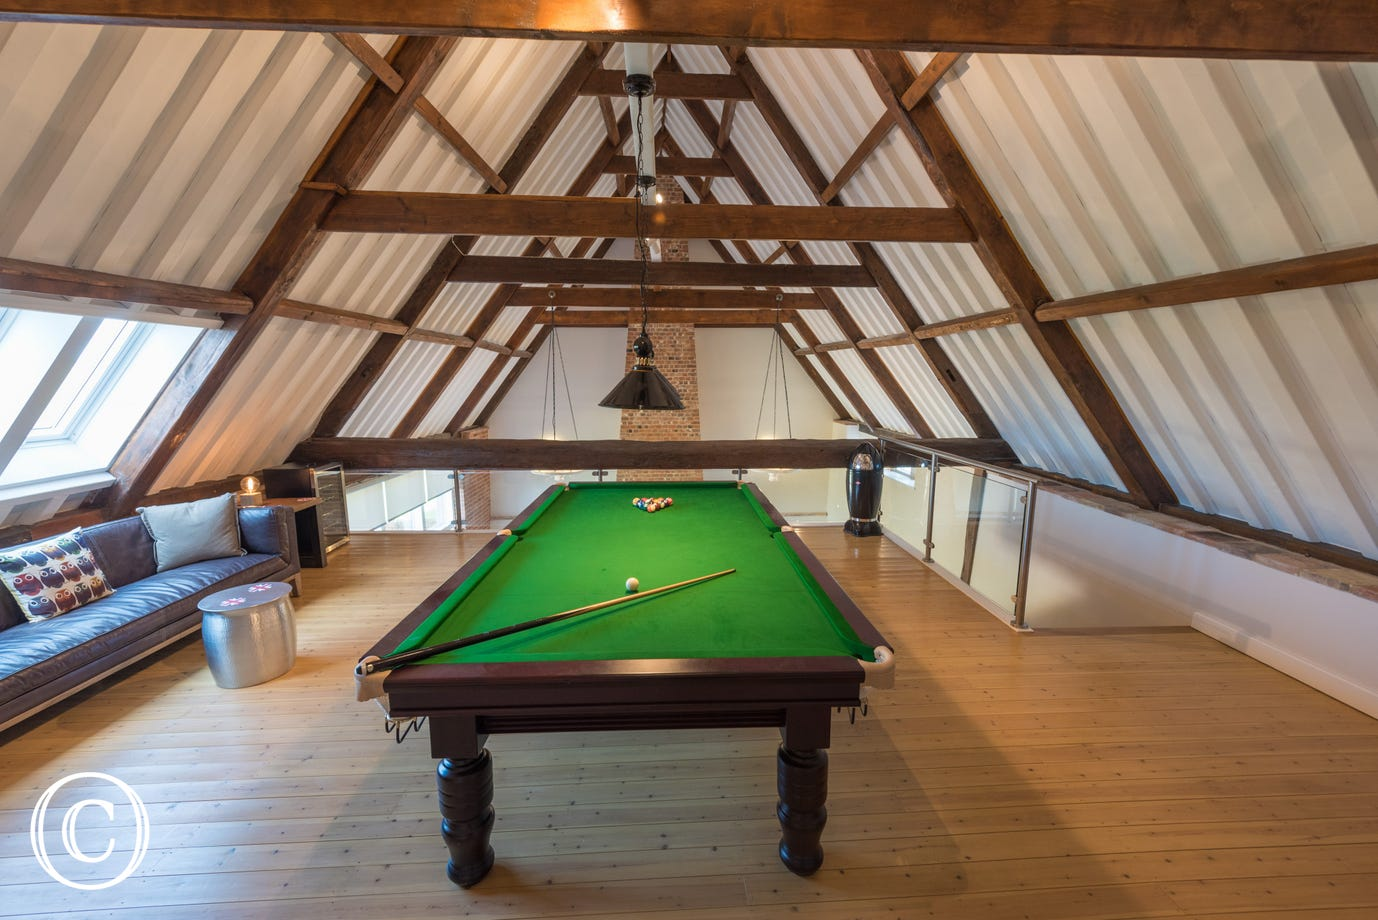 This property has the added luxury of a pool room!